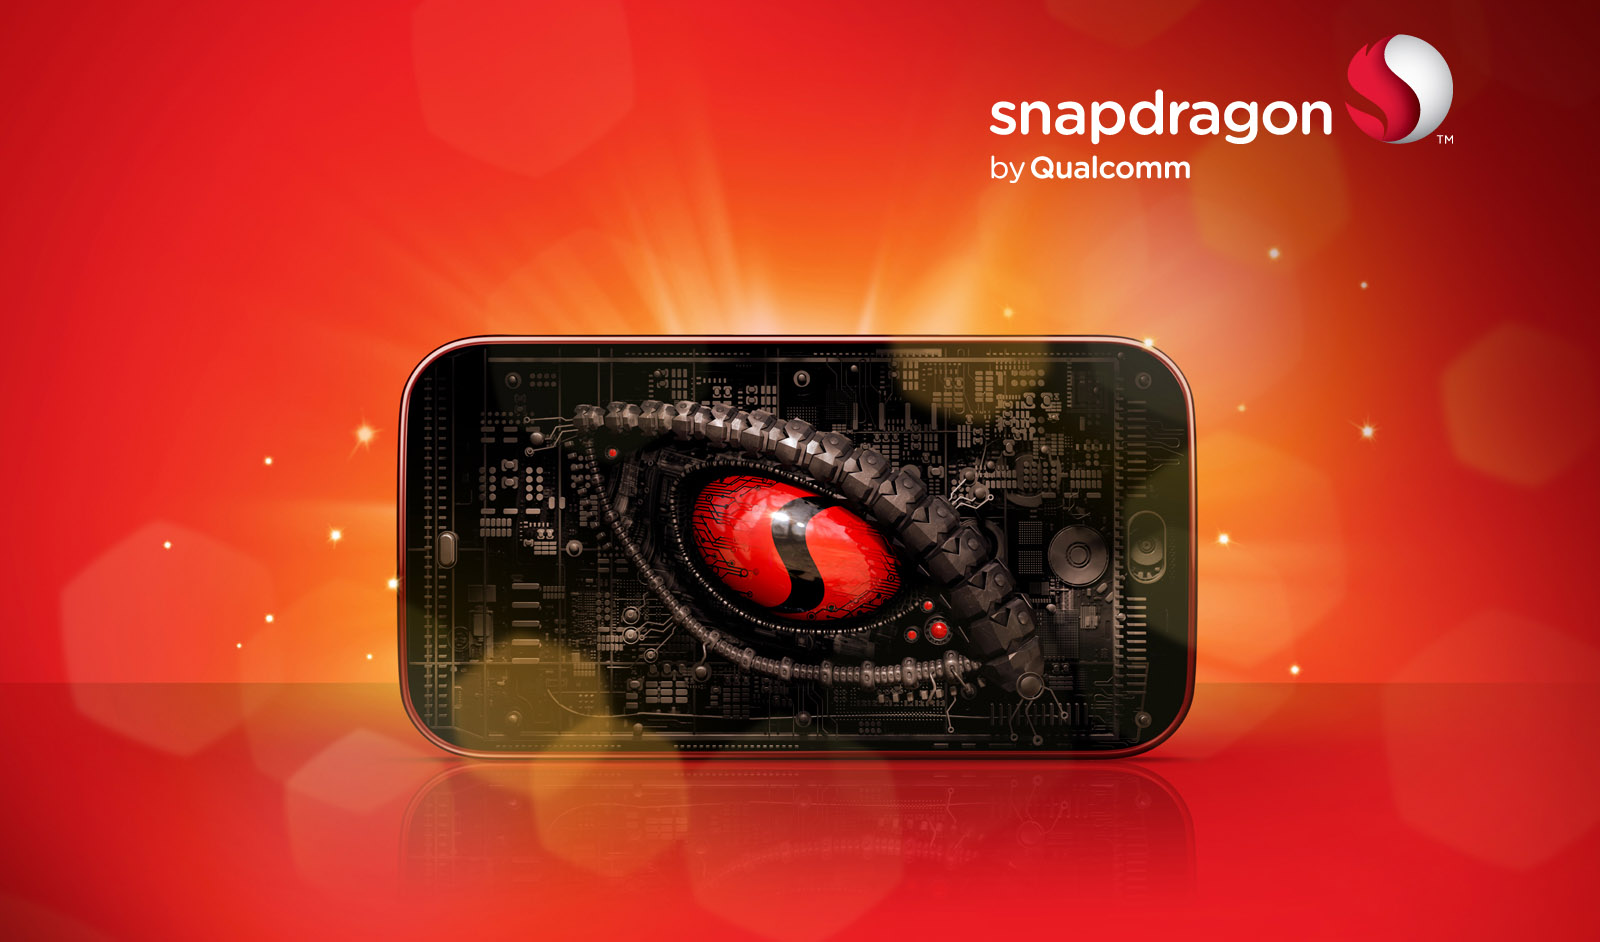 Qualcomm Snapdragon 845 (1)